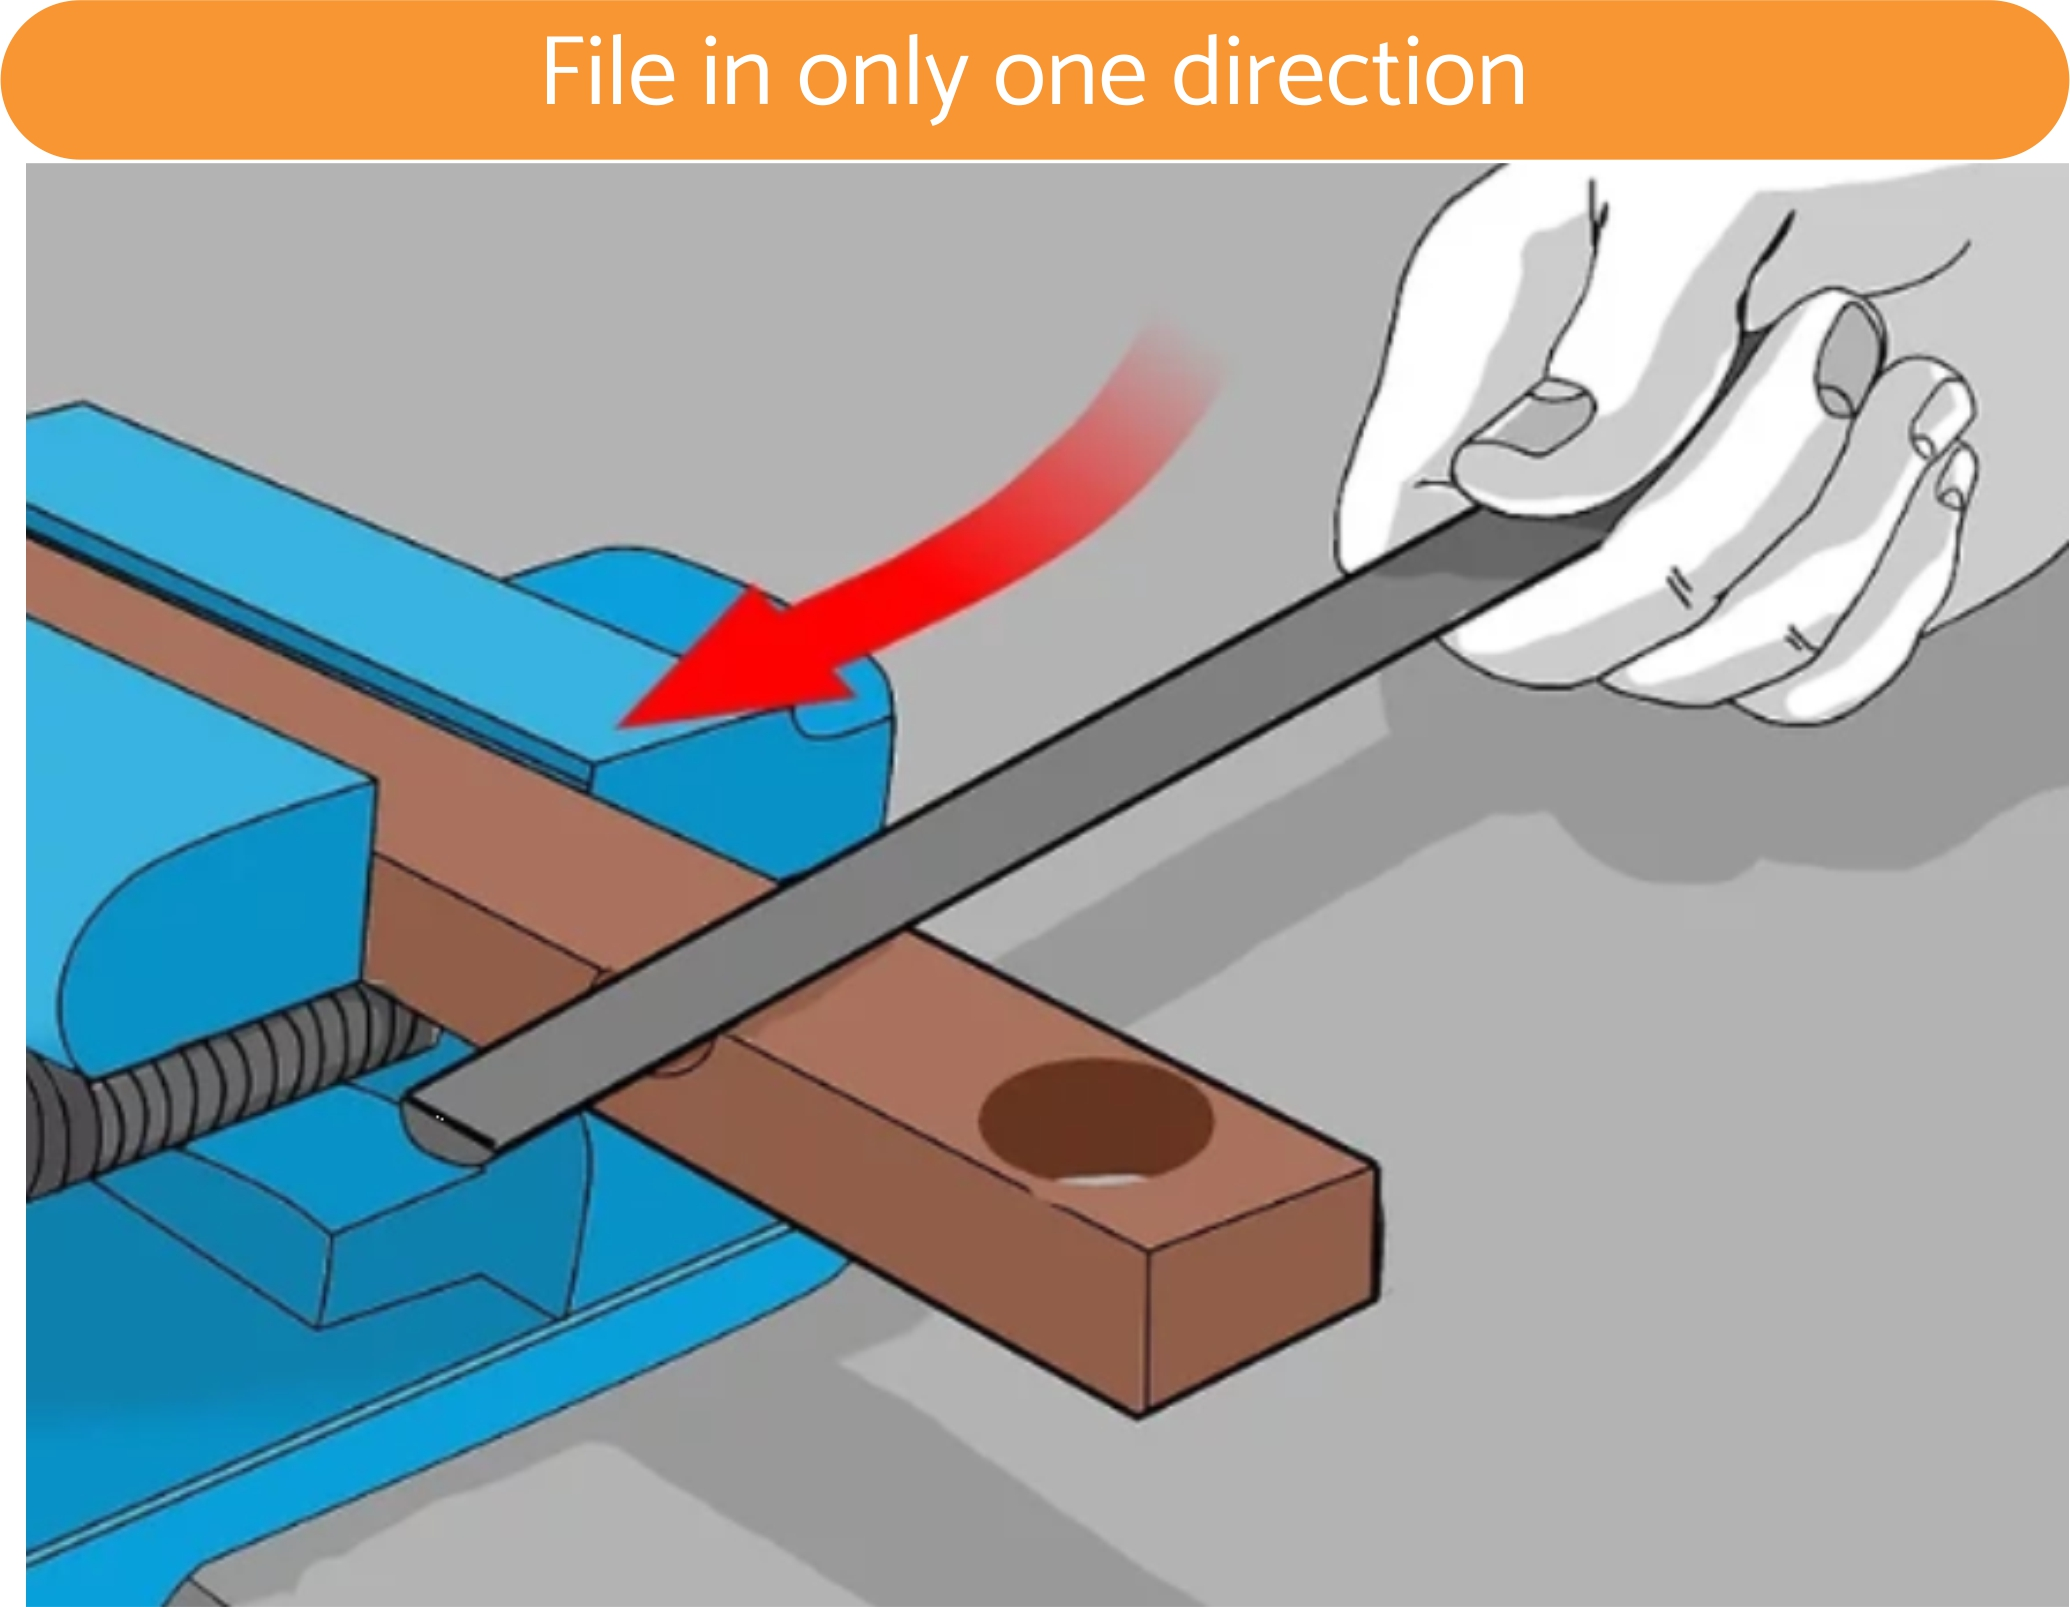 File in only one direction